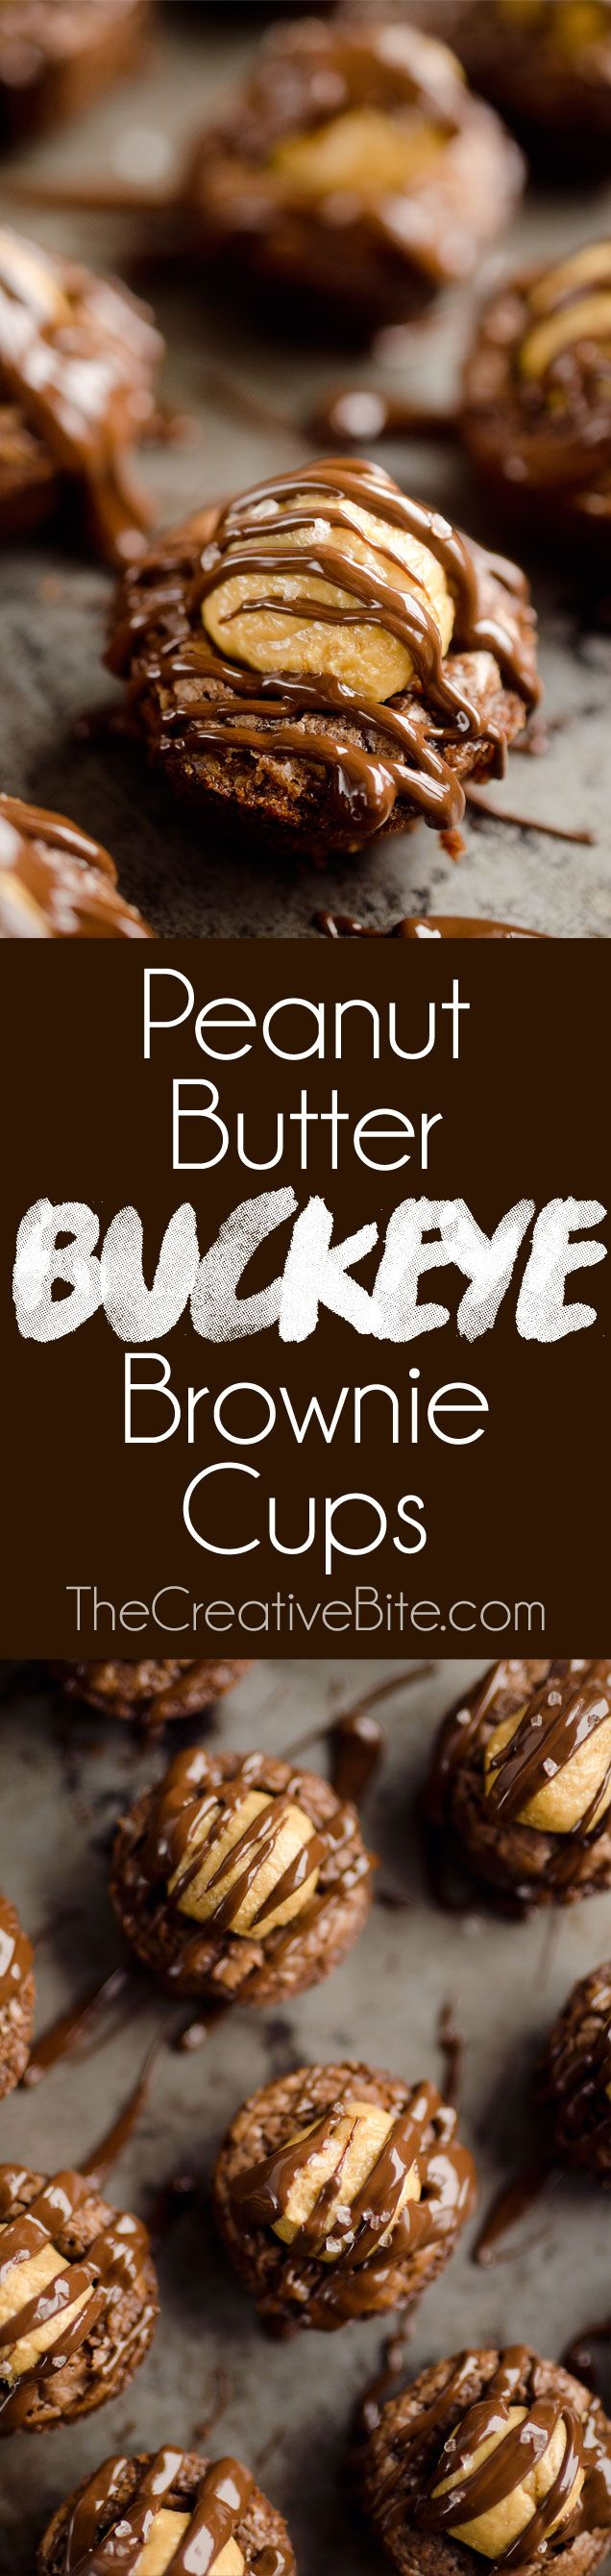 Peanut Butter Buckeye Brownie Cups are the best new dessert recipe you will try! Mini brownies are topped with a Reese's peanut butter filling and drizzled with dark chocolate and sea salt for a drool-worthy sweet treat. #Brownie #PeanutButter #Chocolate